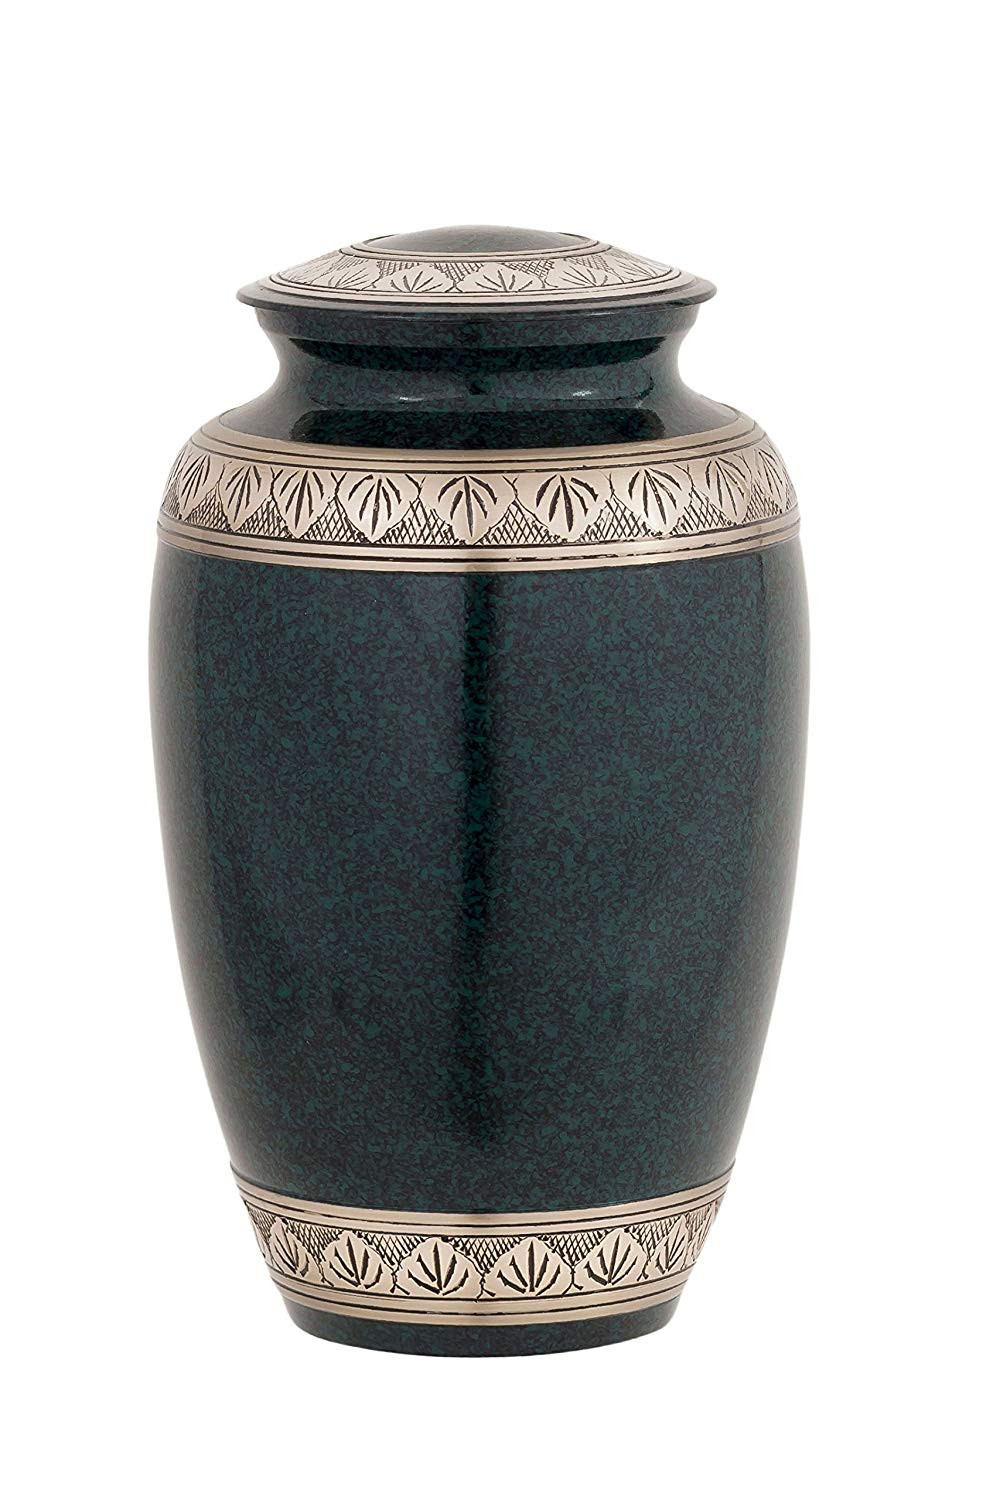 polish pottery large vases of amazon com enshrined memorials cremation urn for ashes electra with amazon com enshrined memorials cremation urn for ashes electra series affordable solid brass metal quality handcrafted for human funeral burial large 10